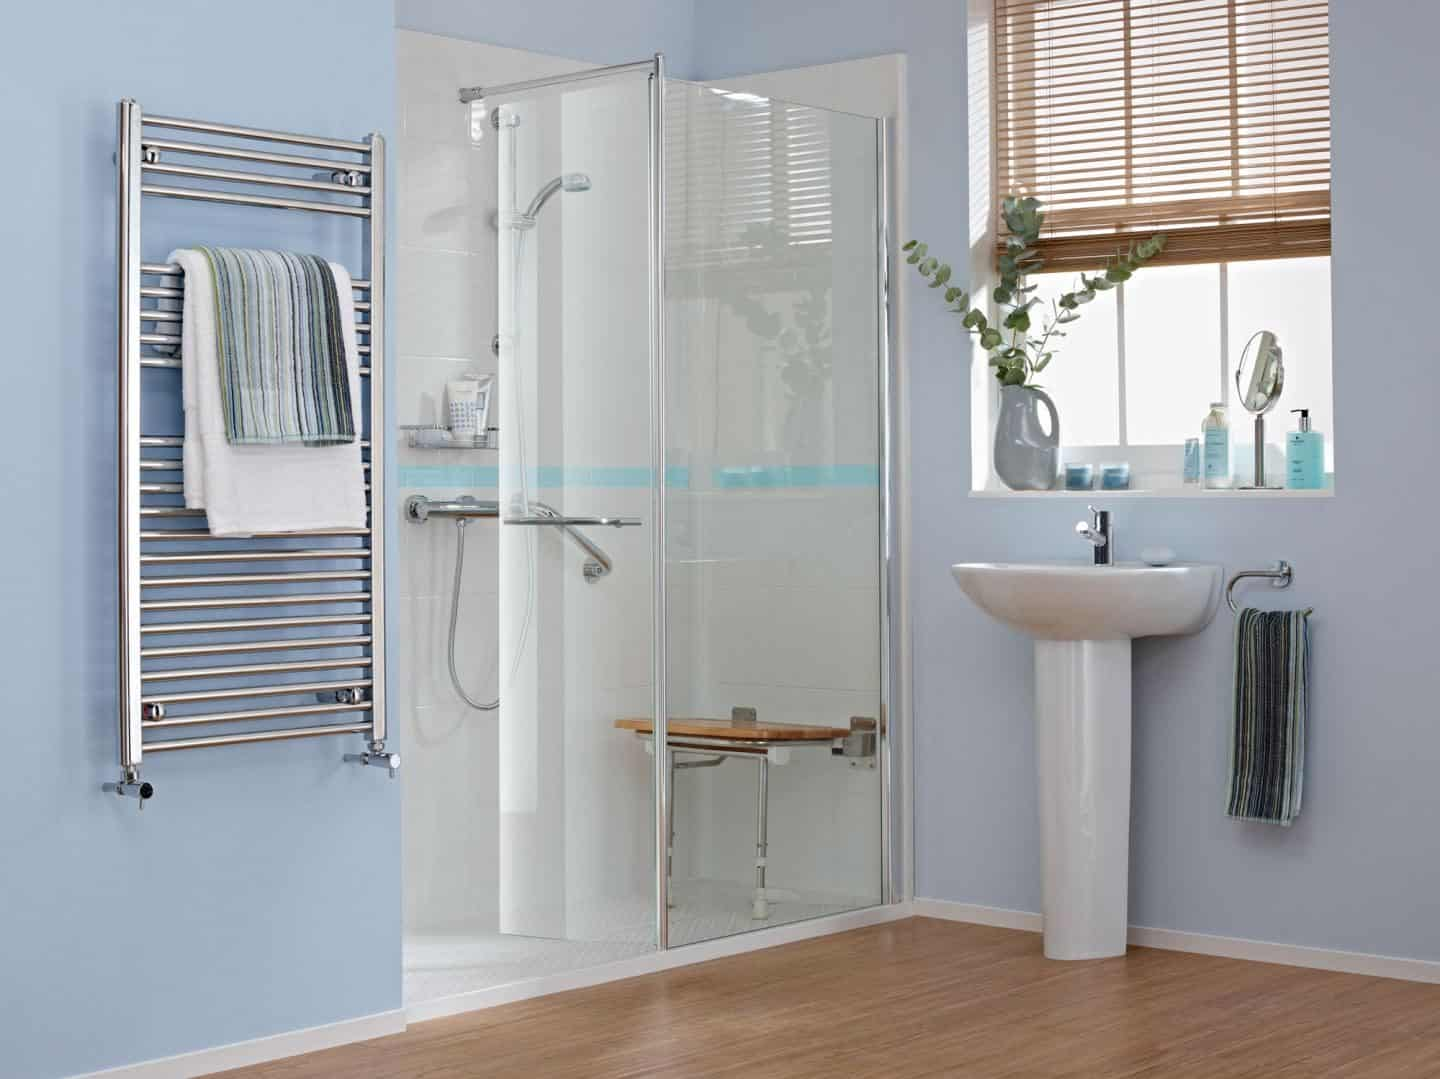 Accessible bathroom design from Premier Care Bathrooms. A walk-in shower feturing integrated shower seat and grab rails.